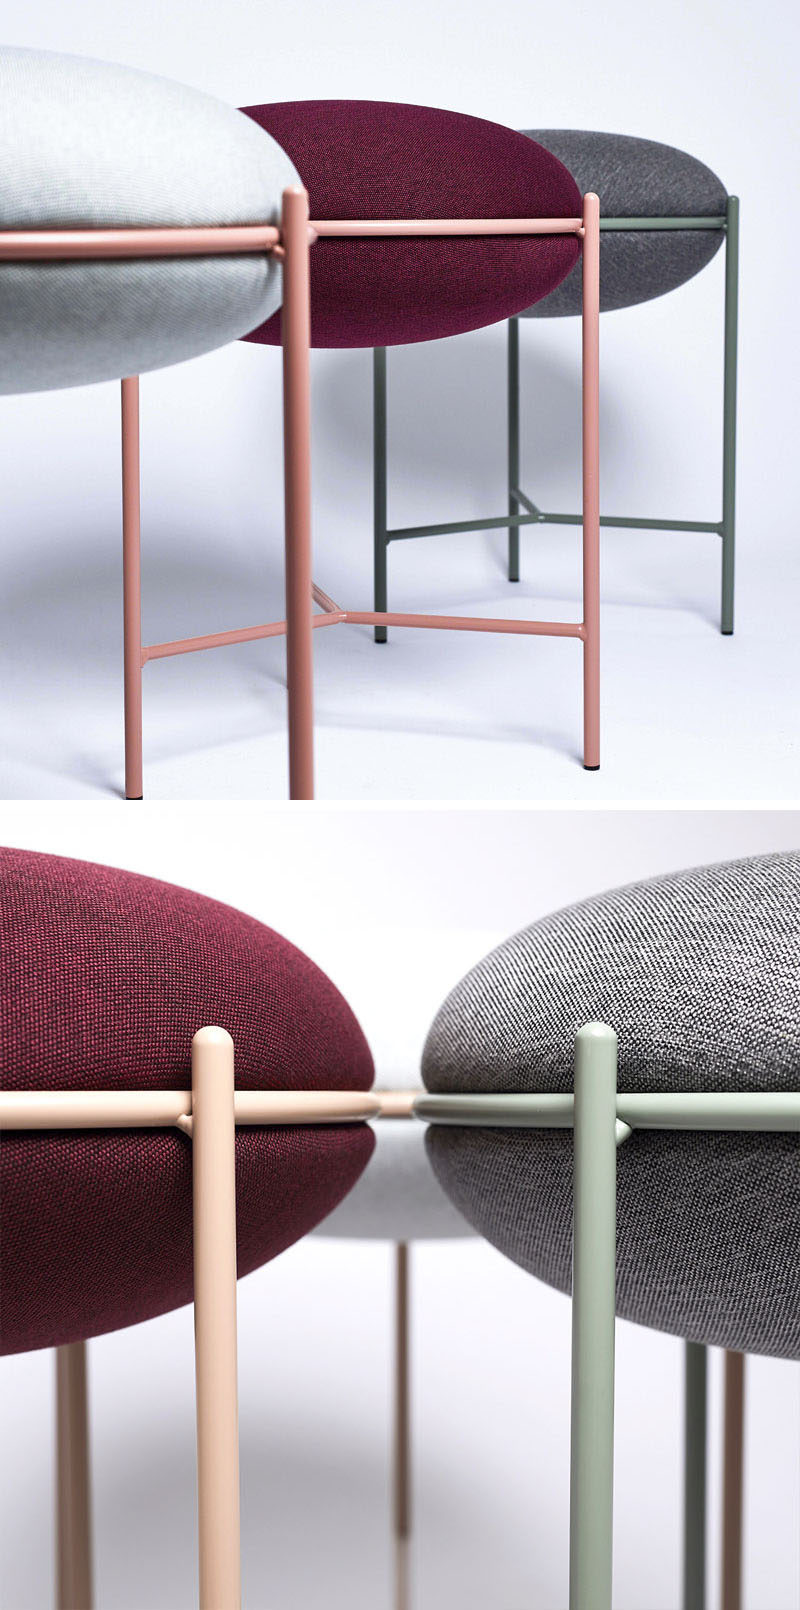 The NEA stool made from thin metal and a curved cushion, offers a modern seating option with a subtle pop of colour. #Stool #ModernStool #ModernFurniture #MinimalistFurniture